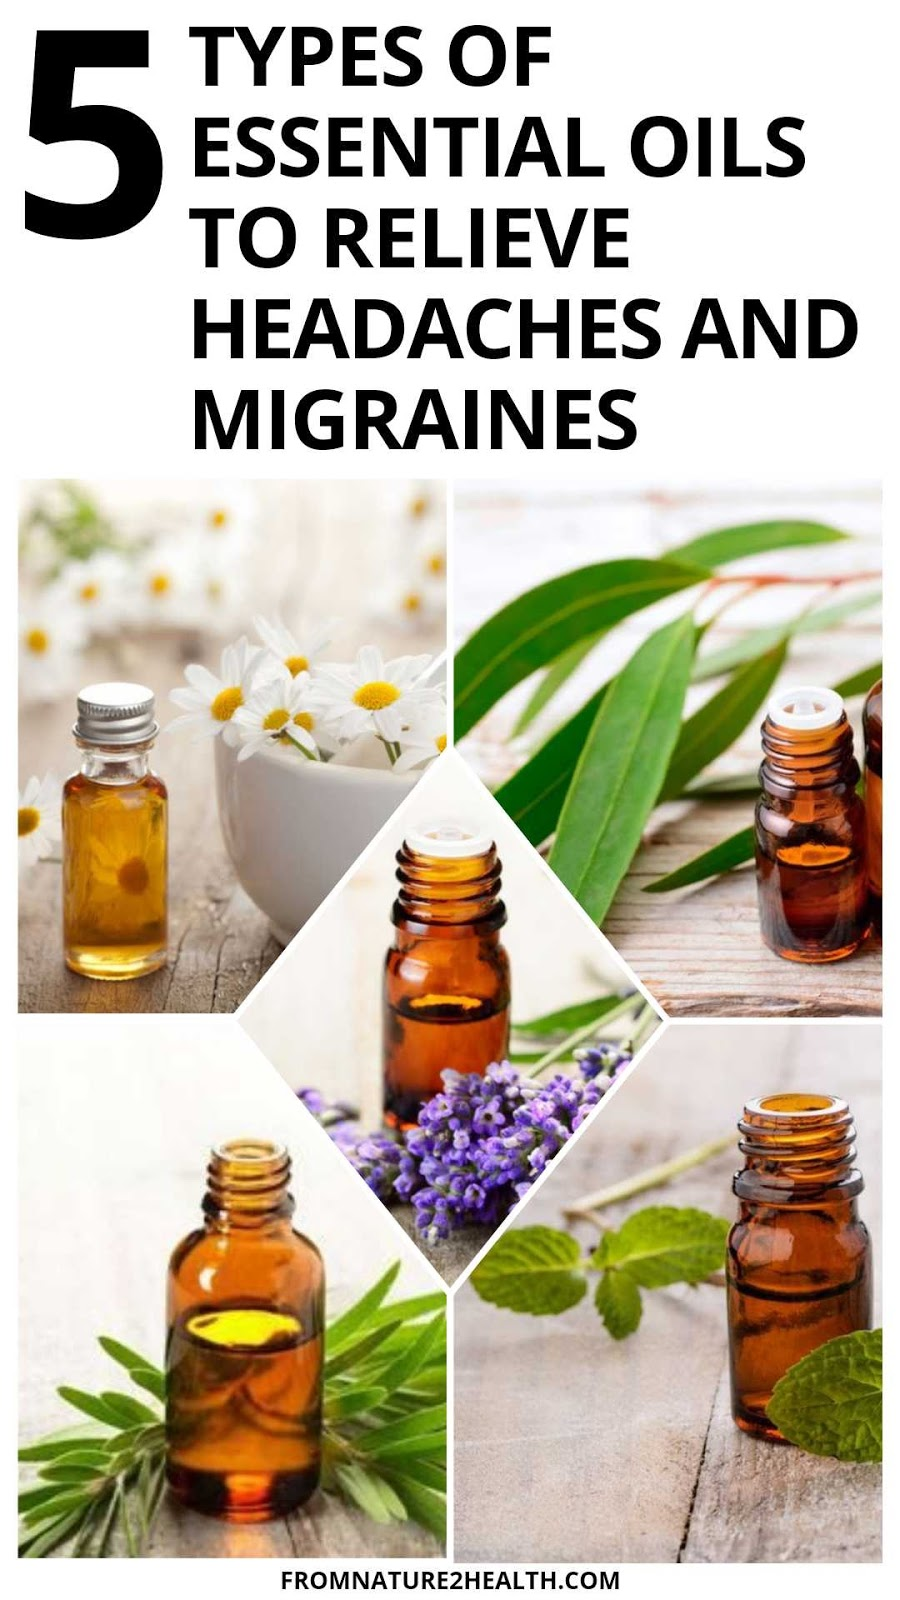 5 Types of Essential Oils to Relieve Headaches and Migraines